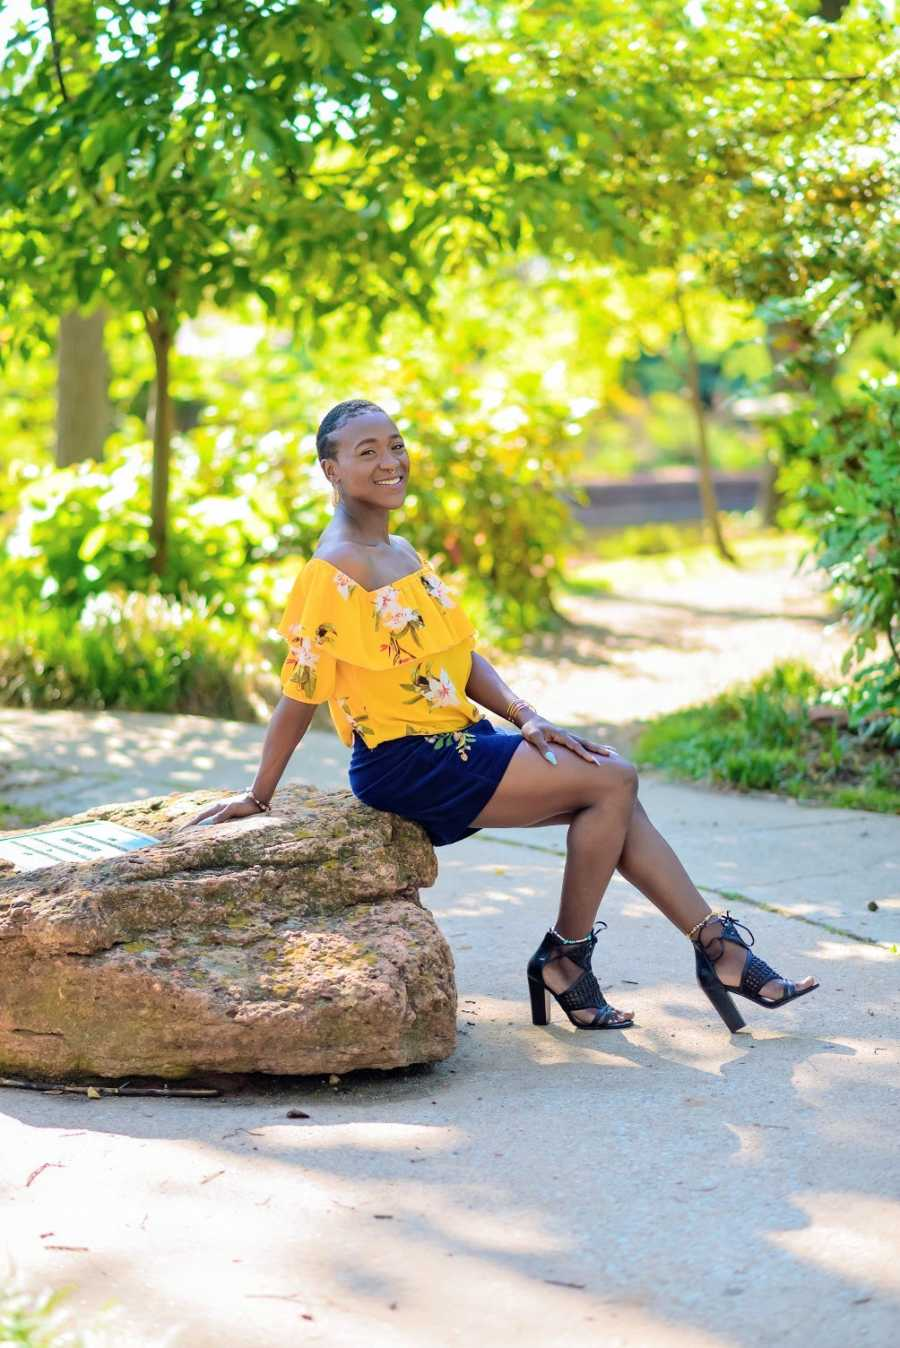 A woman wearing yellow sits on a rock in the park